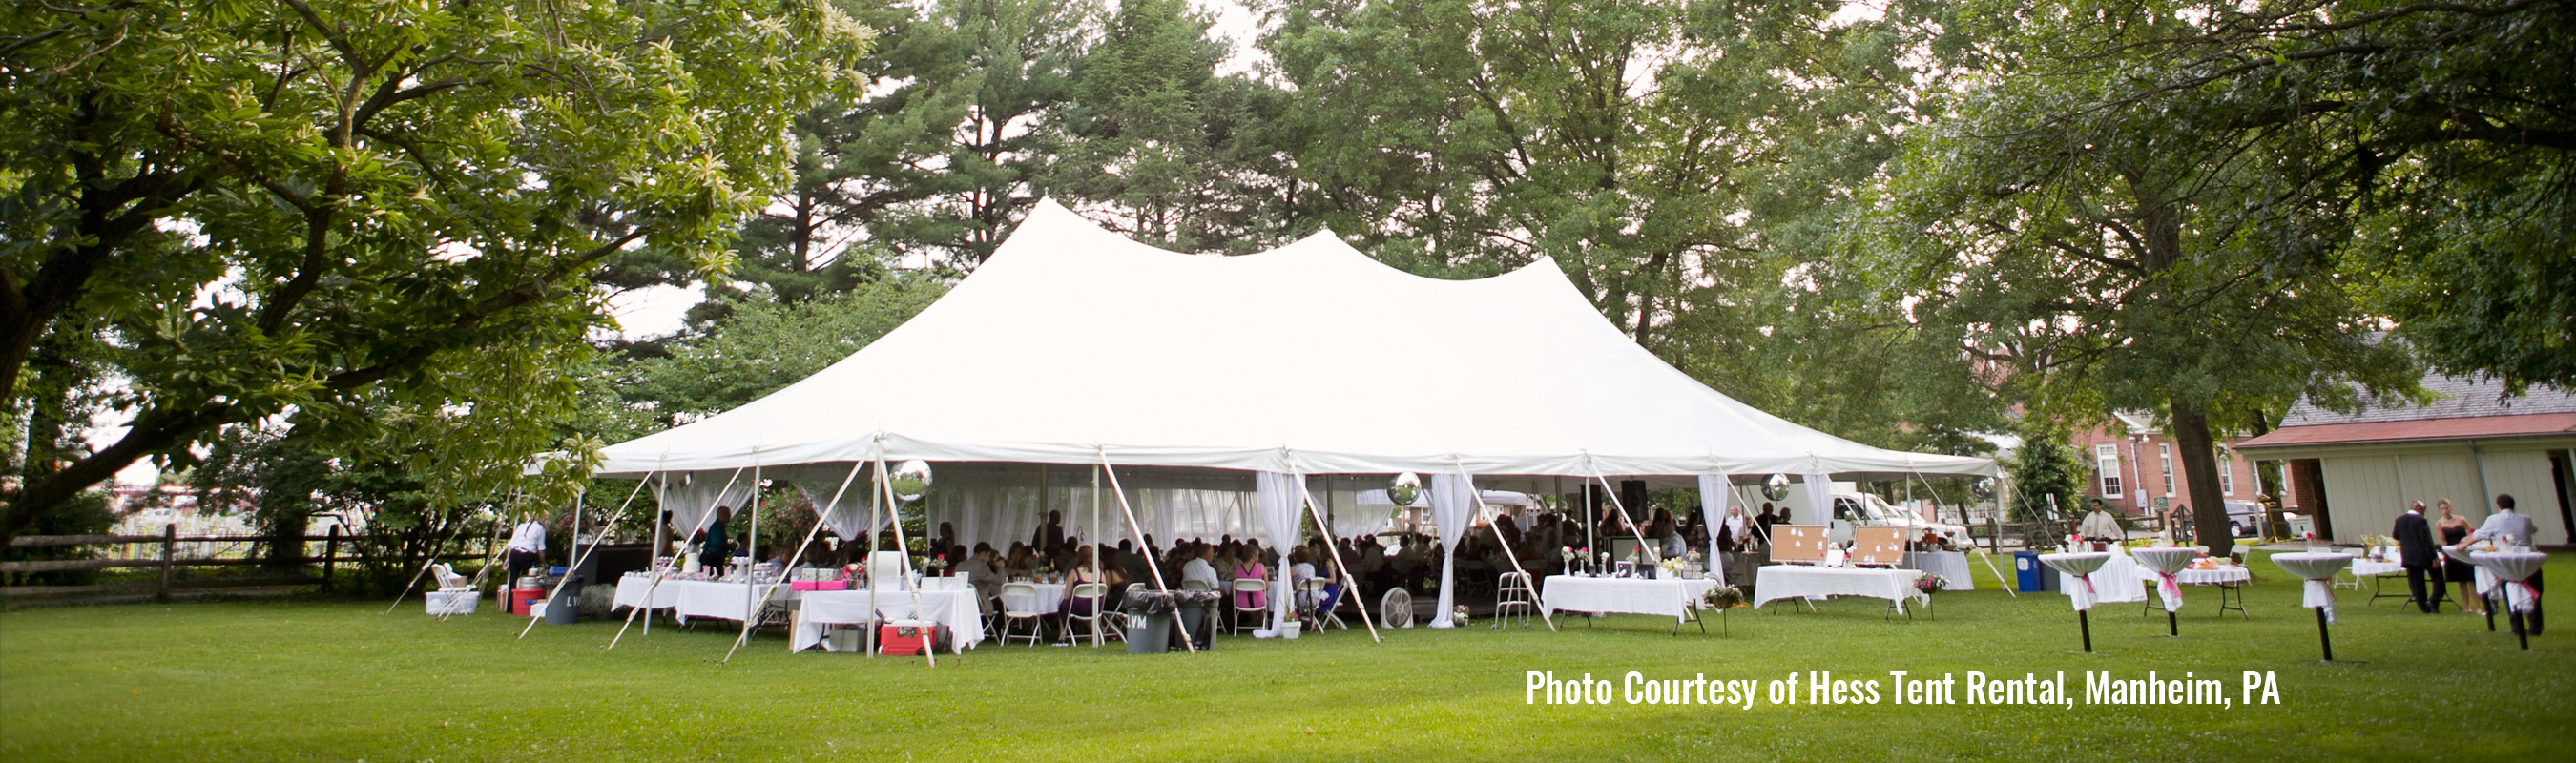 Tent Products : big tent parties - memphite.com